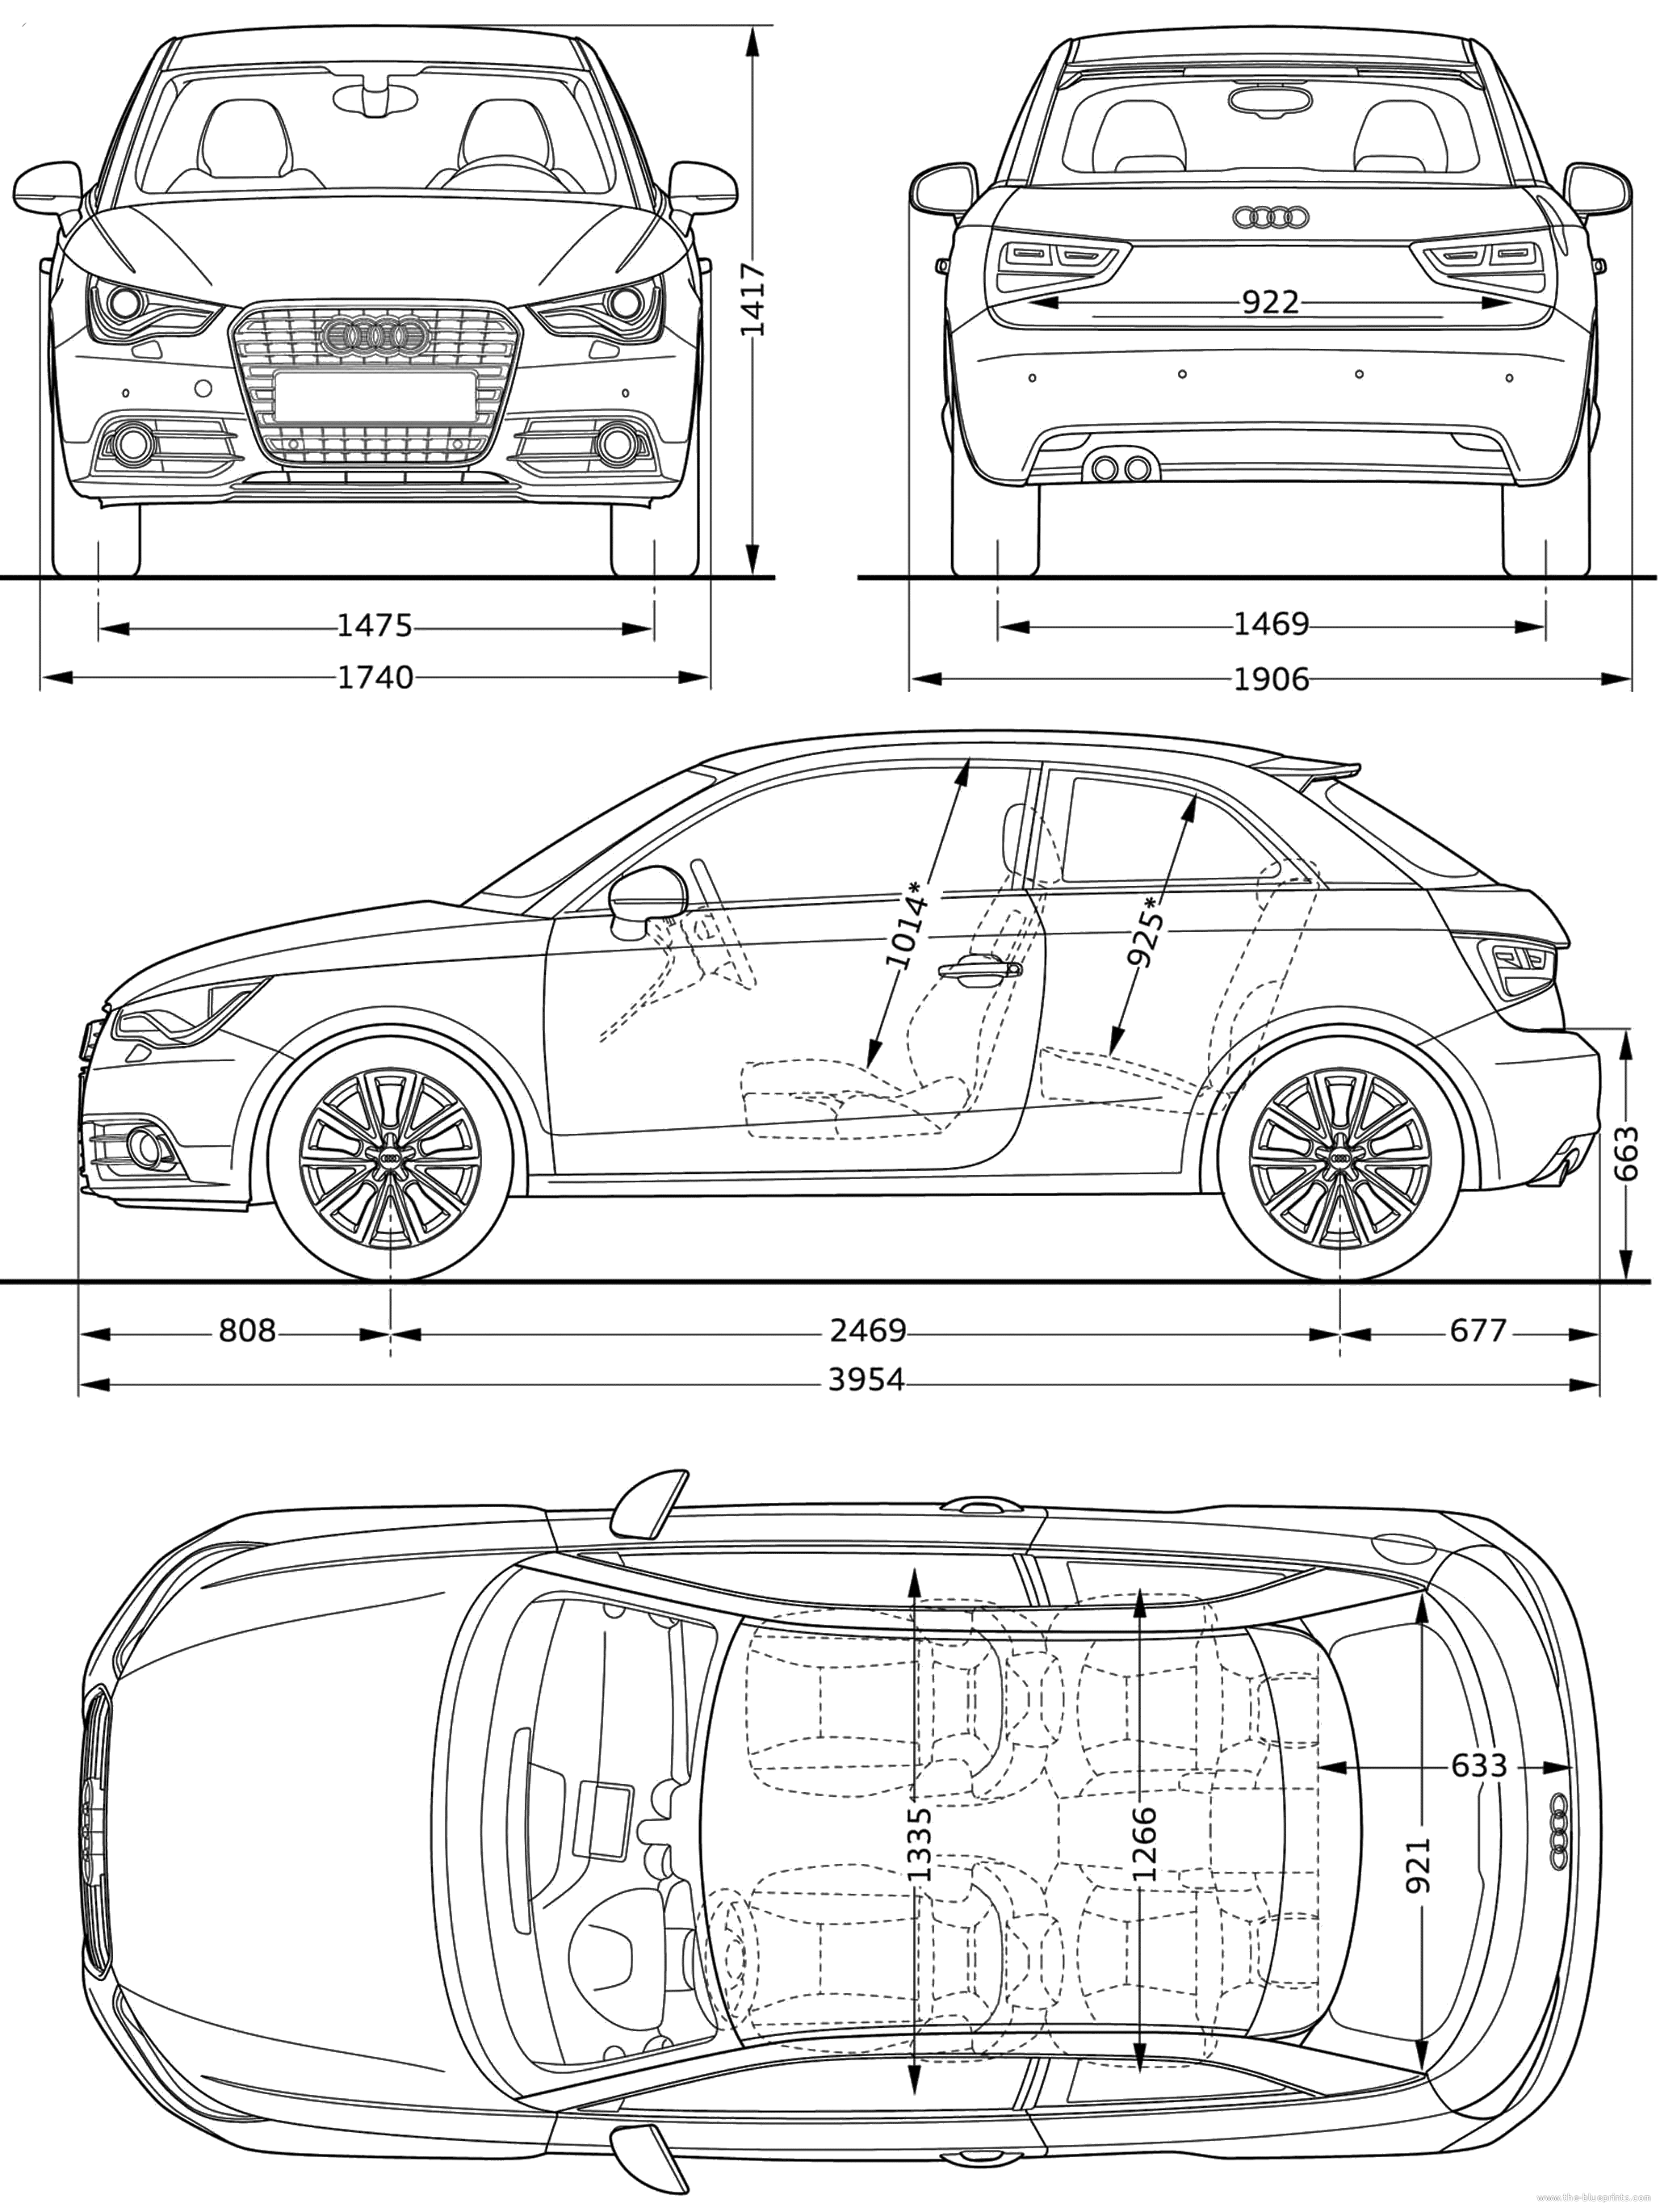 blueprints cars audi audi a1 2010. Black Bedroom Furniture Sets. Home Design Ideas